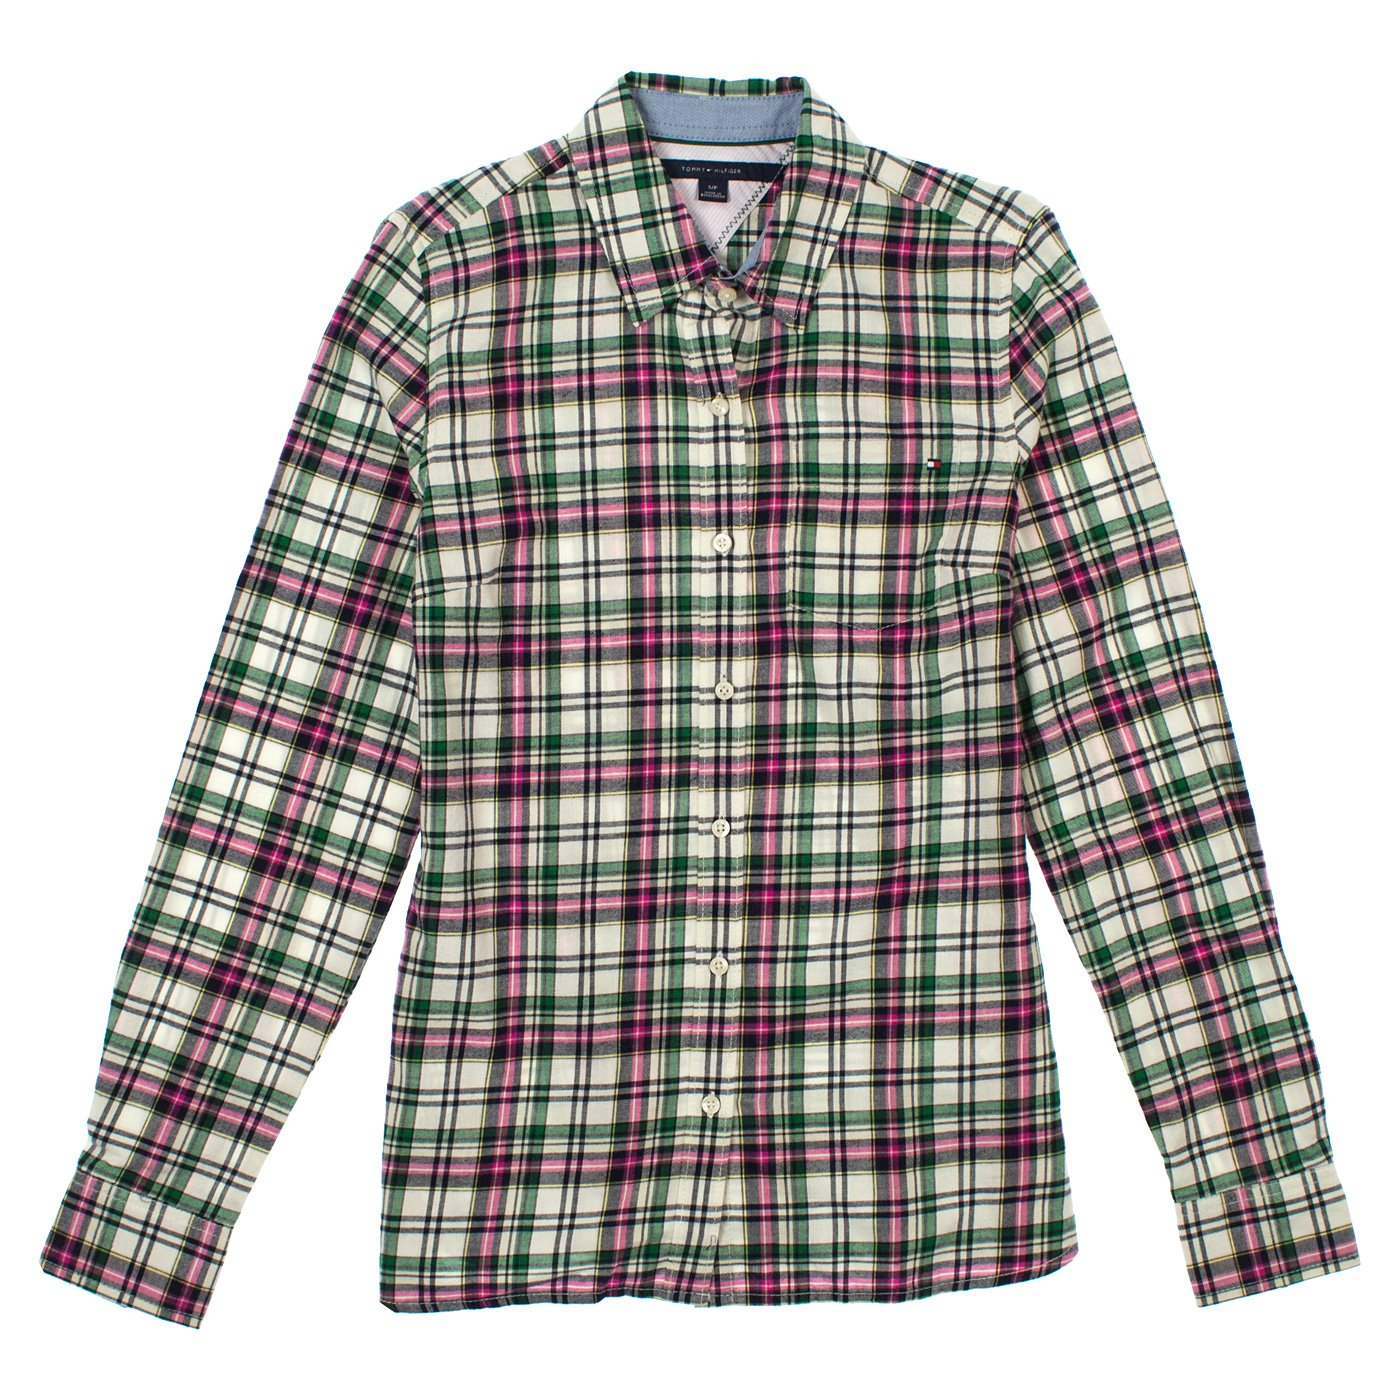 bd3e91d6 Tommy Hilfiger Womens Plaid Button Up Shirt at Amazon Women's Clothing  store: